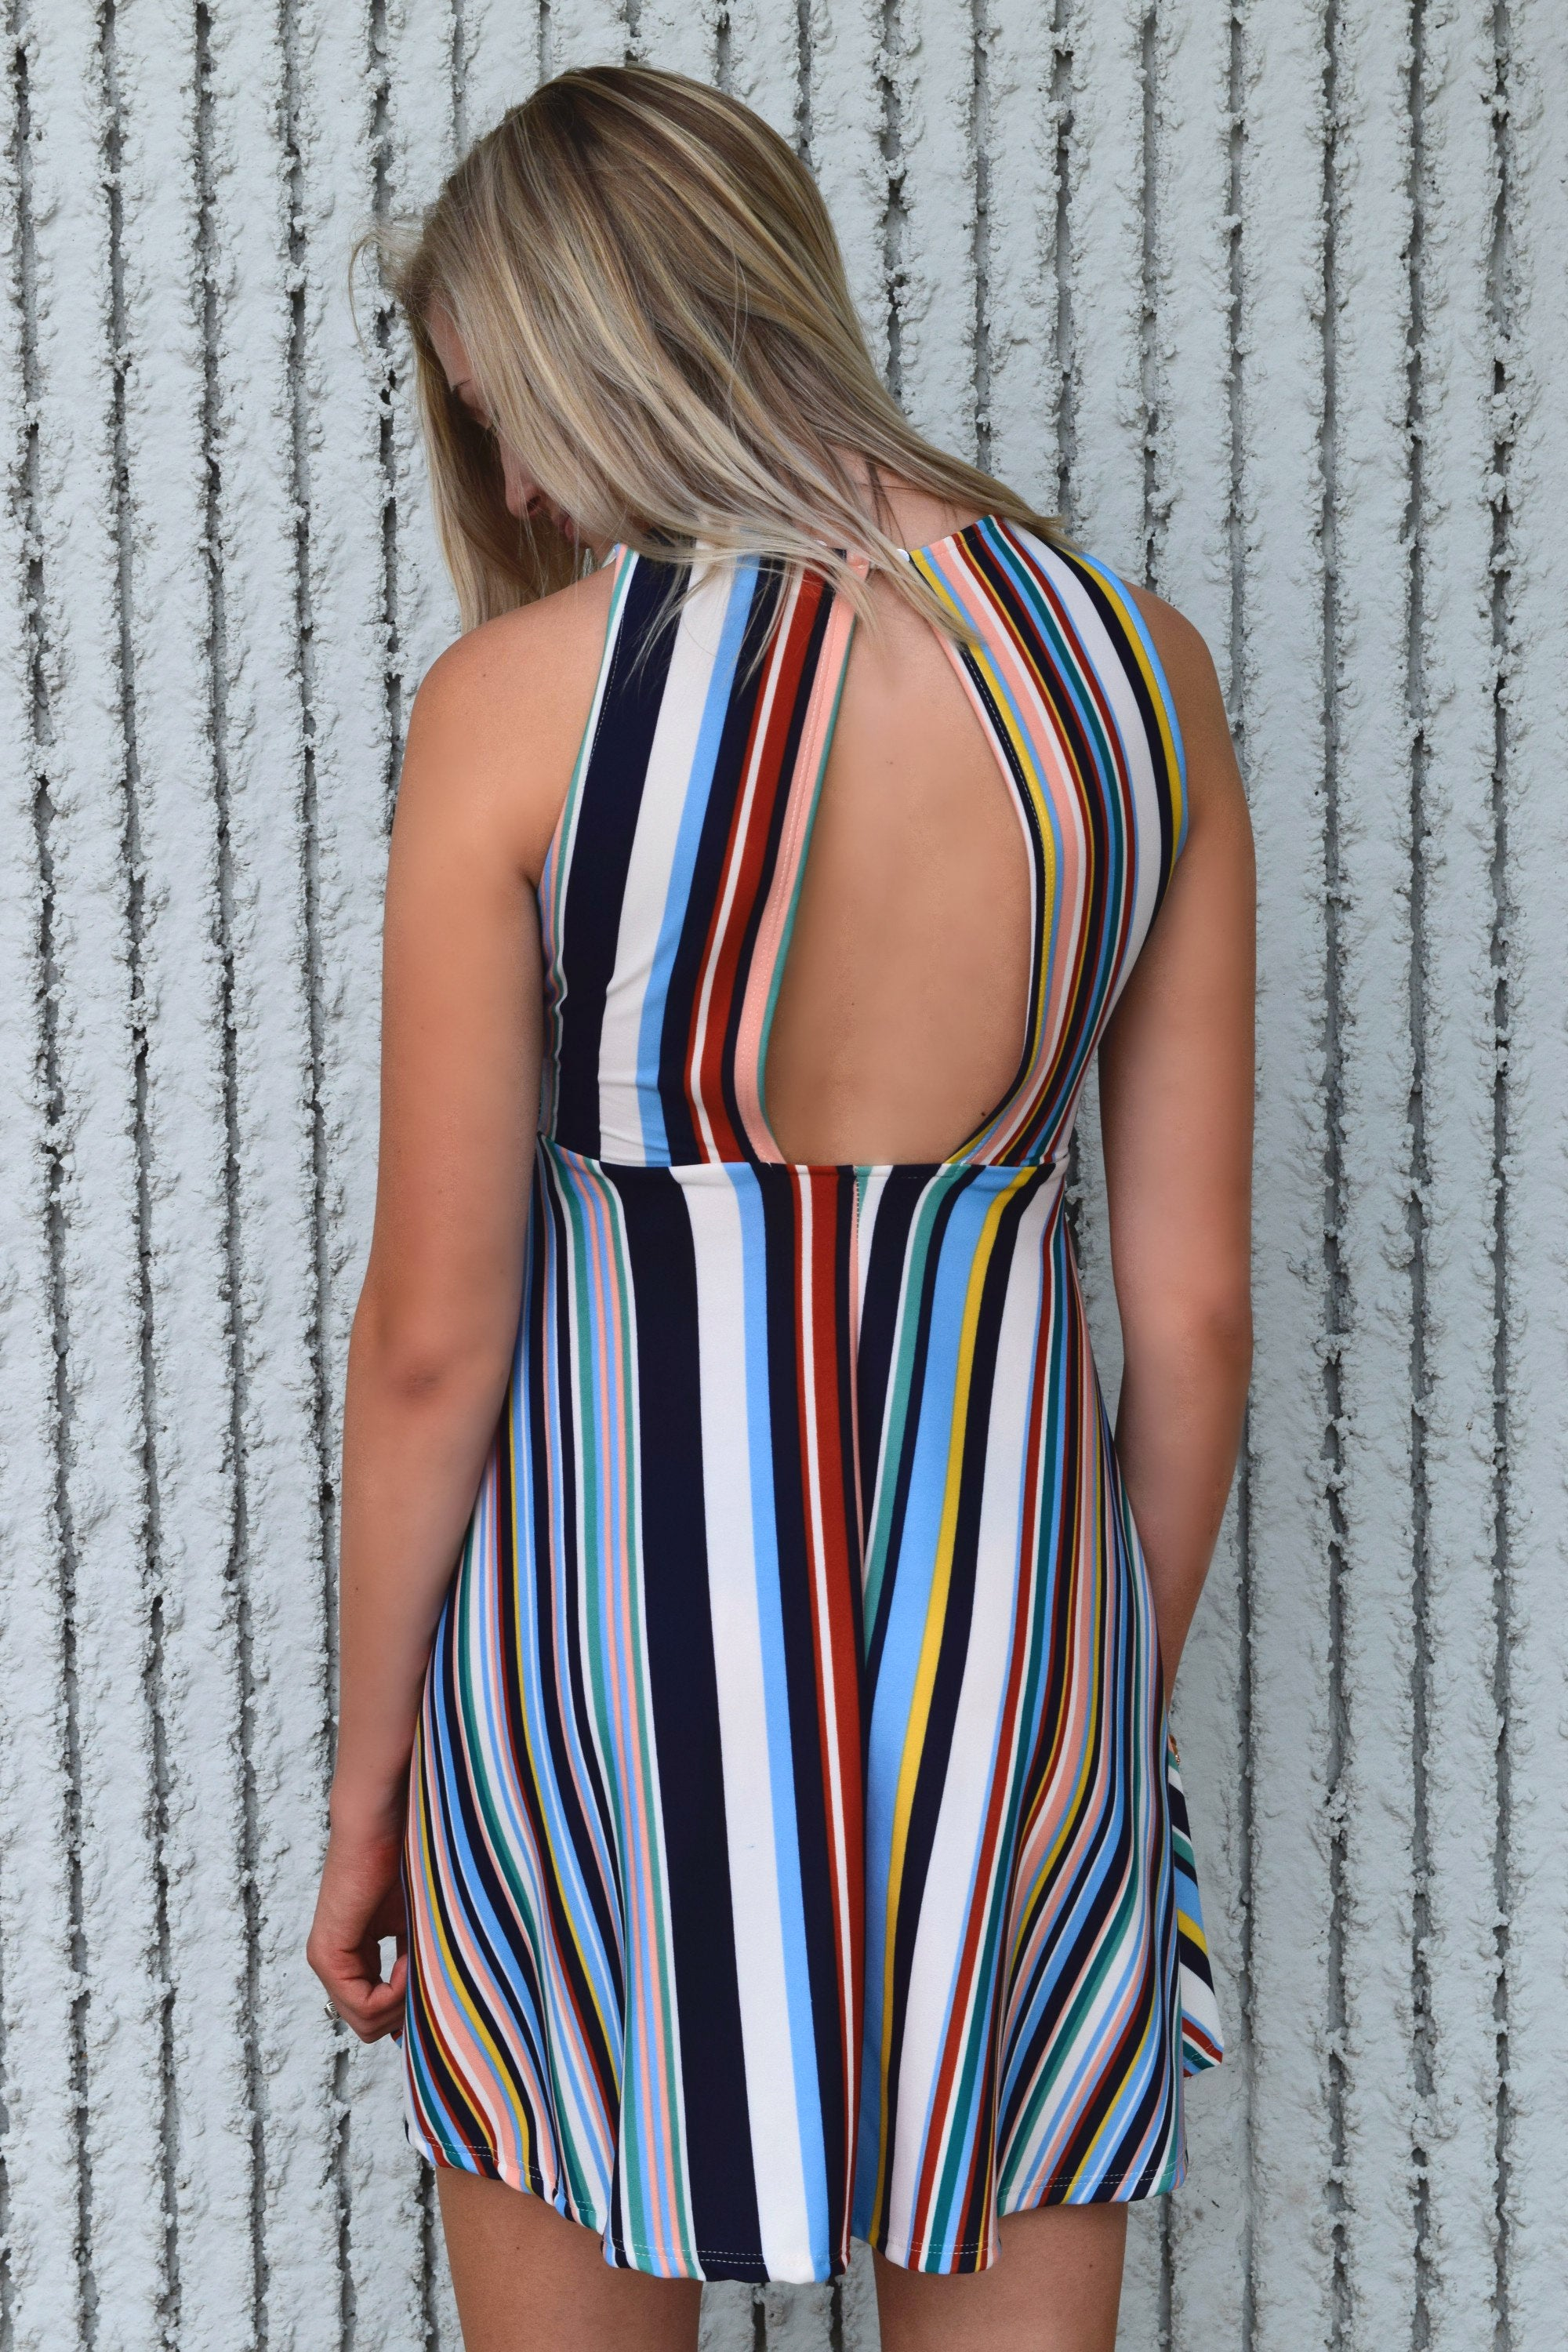 COLORS OF THE RAINBOW STRIPED DRESS